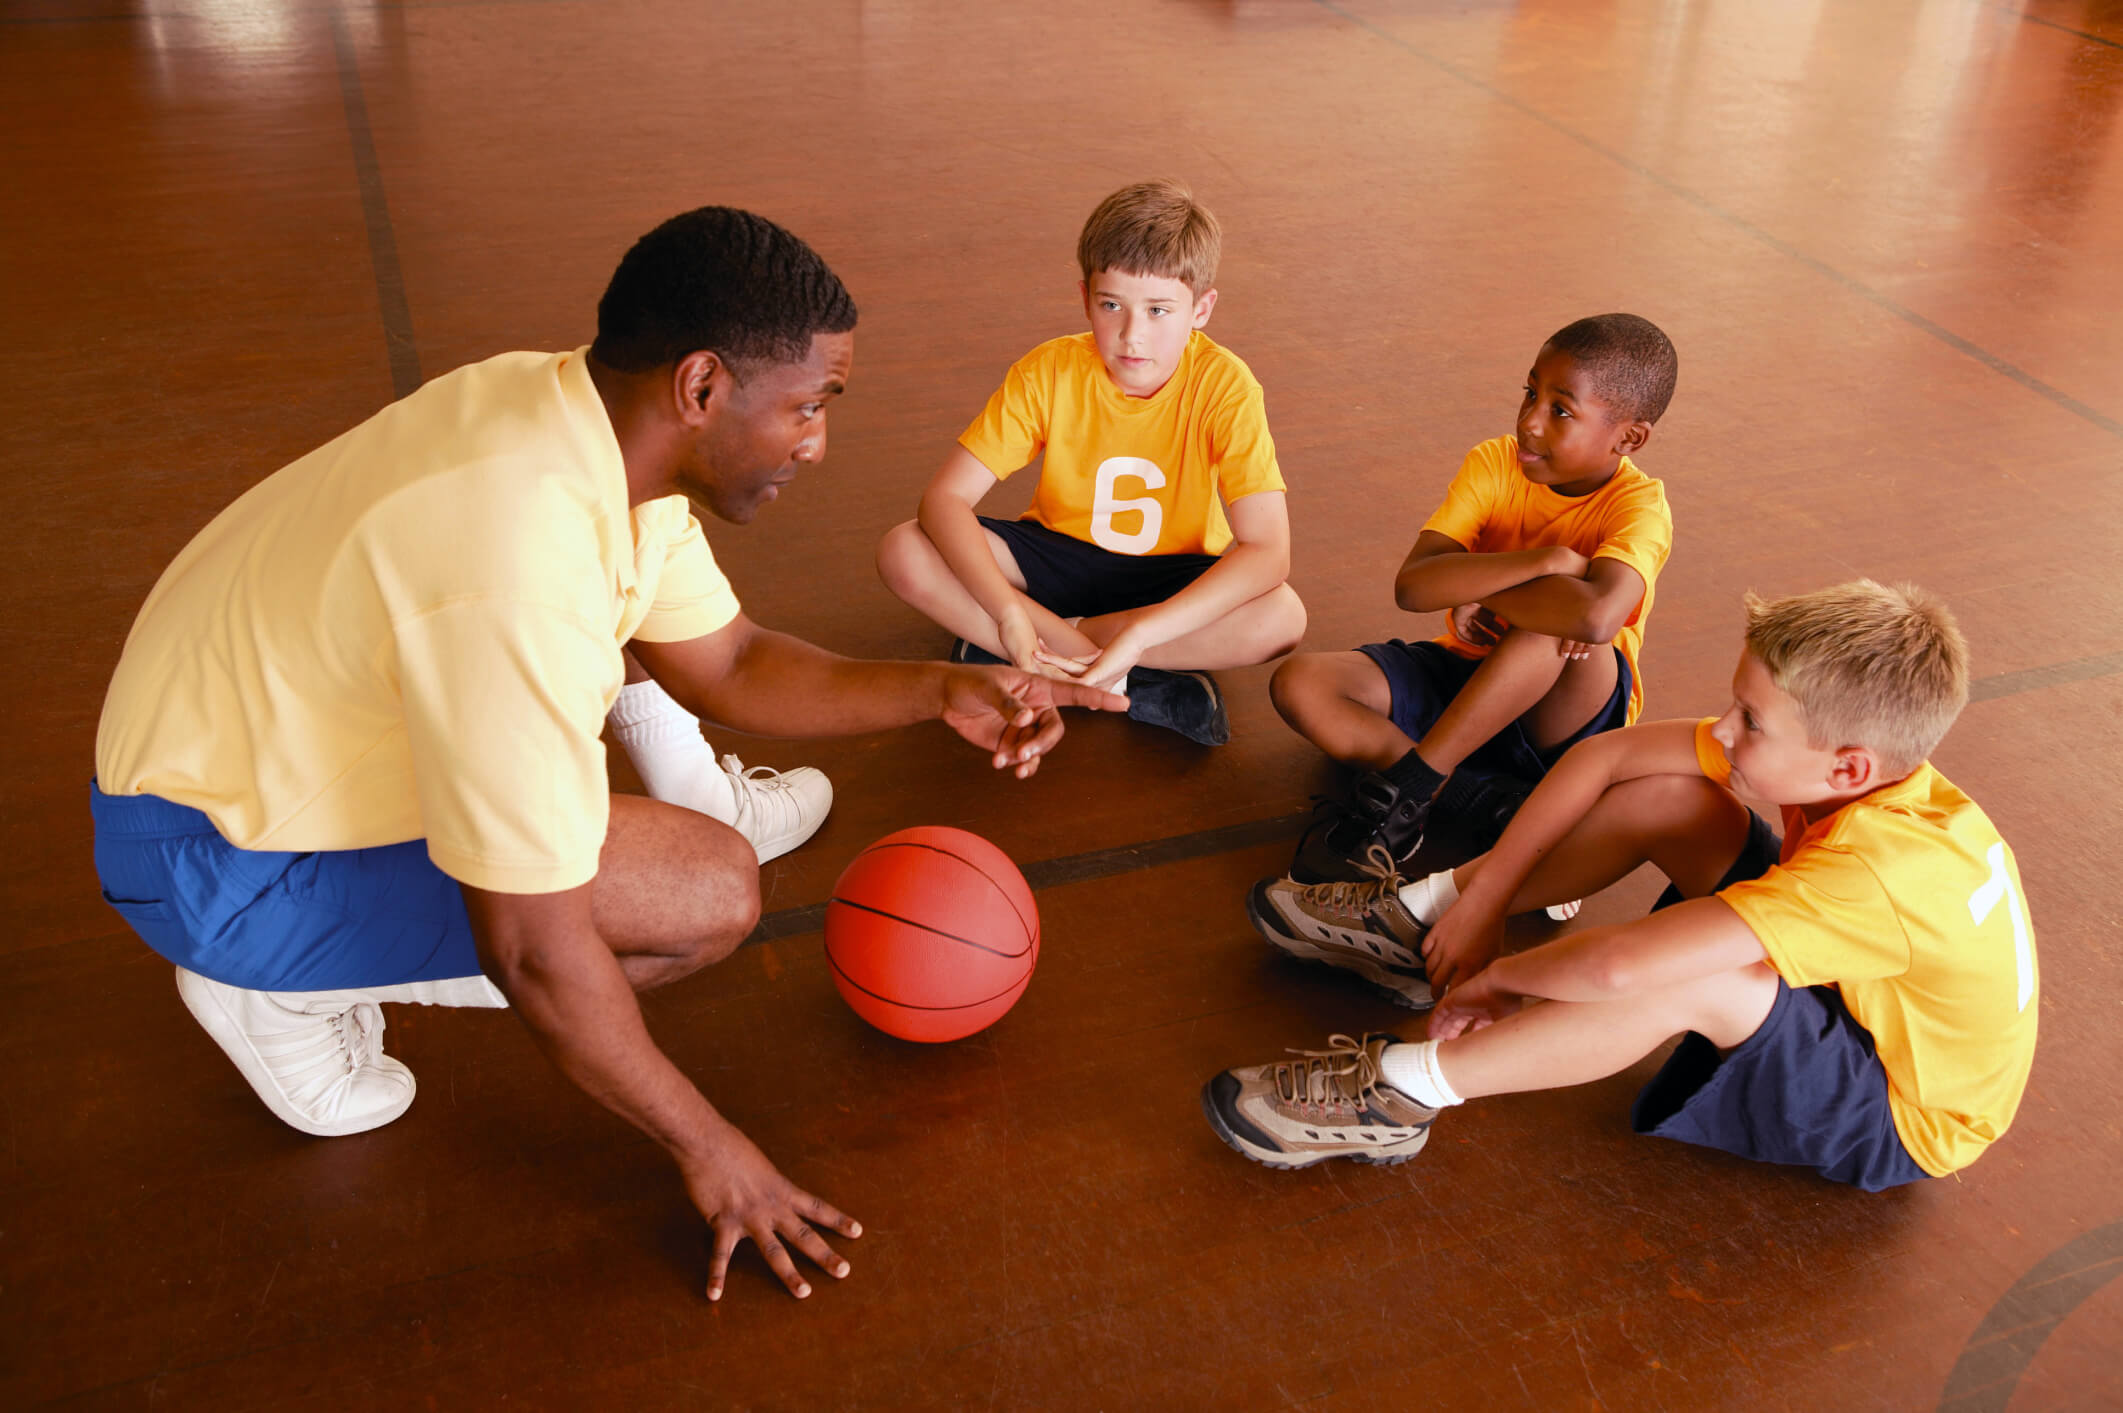 Role of sport coaches